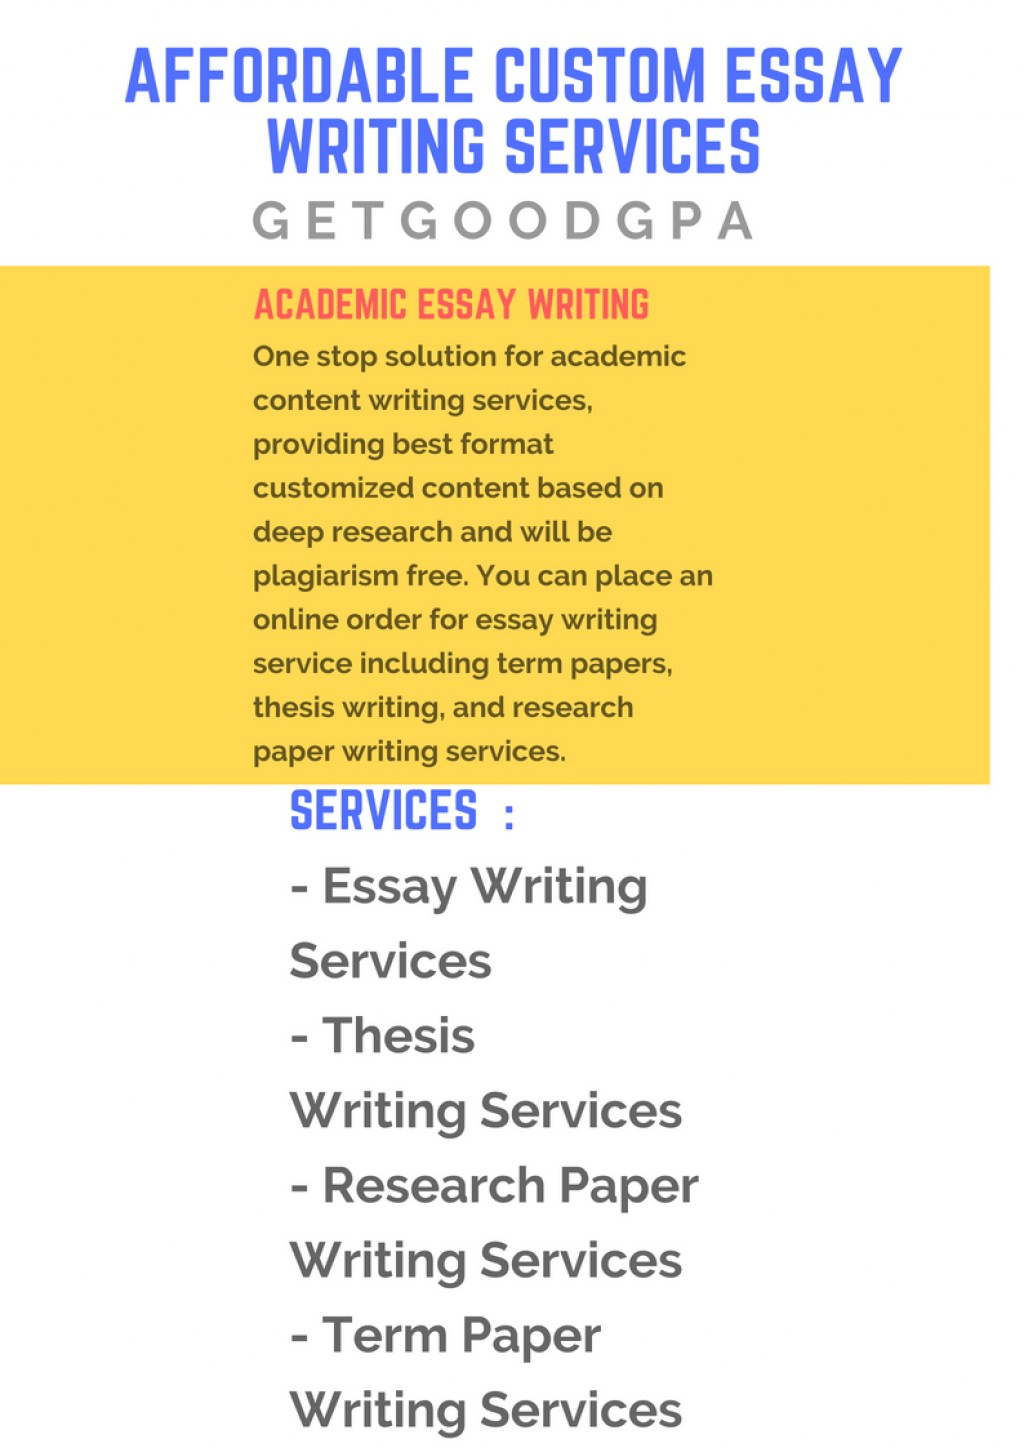 002 1p24u5izogrgxlkfzqmxvgq Research Paper Writing Dreaded Service Services In India Online Chennai Large